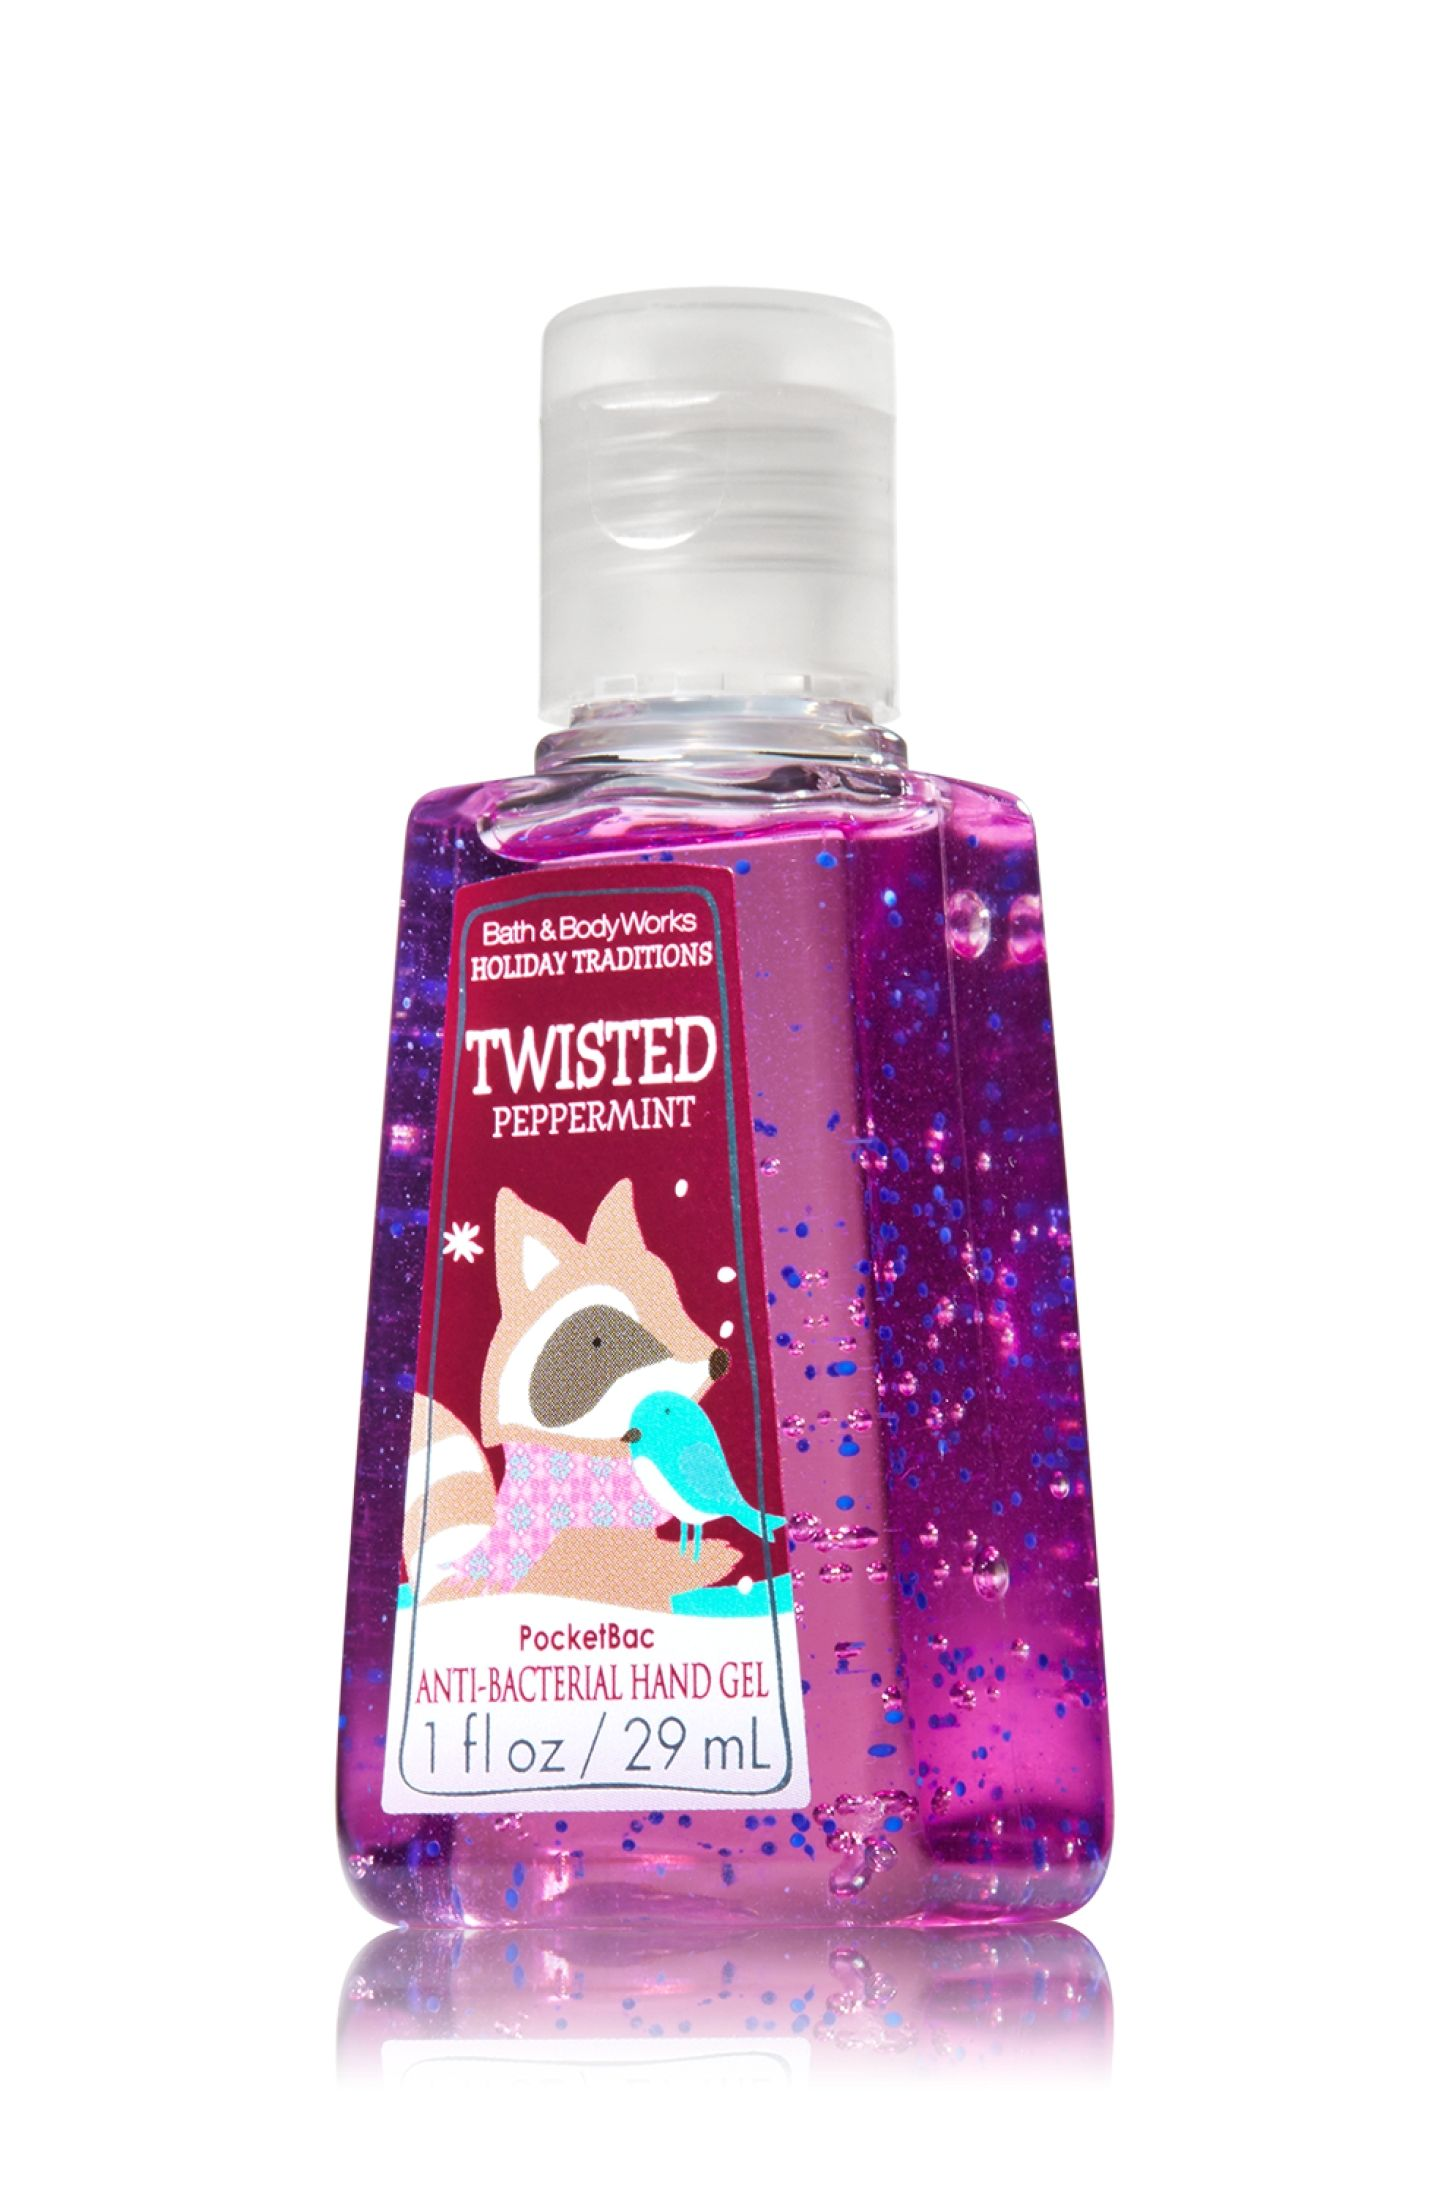 Jj Twisted Peppermint Pocketbac Sanitizing Hand Gel 1 75